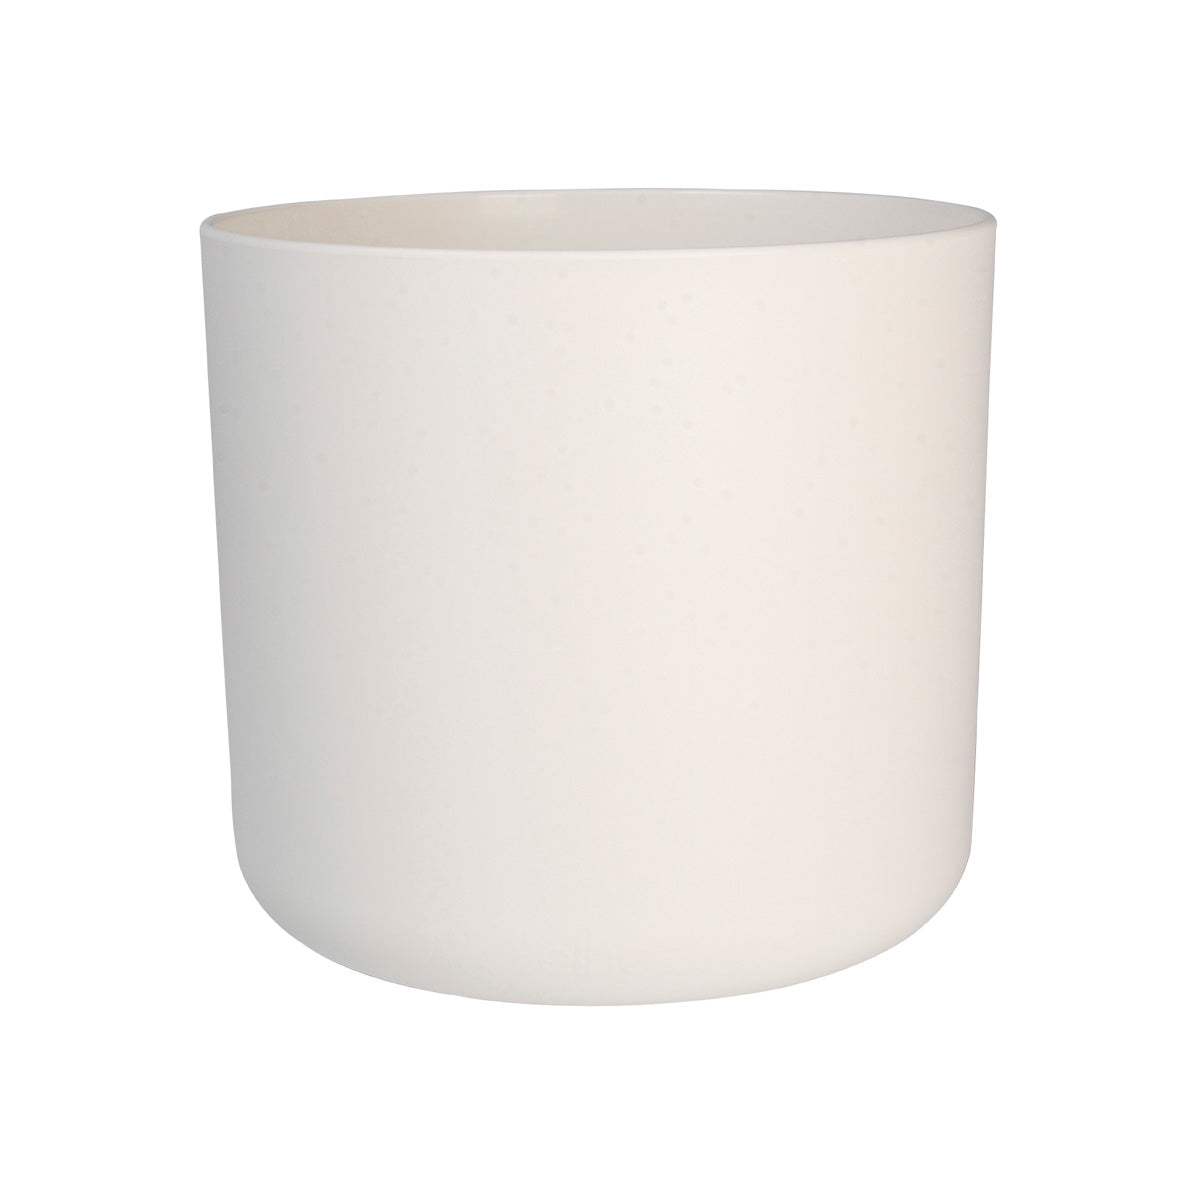 B.for Soft Cover Pot - 18cm - White